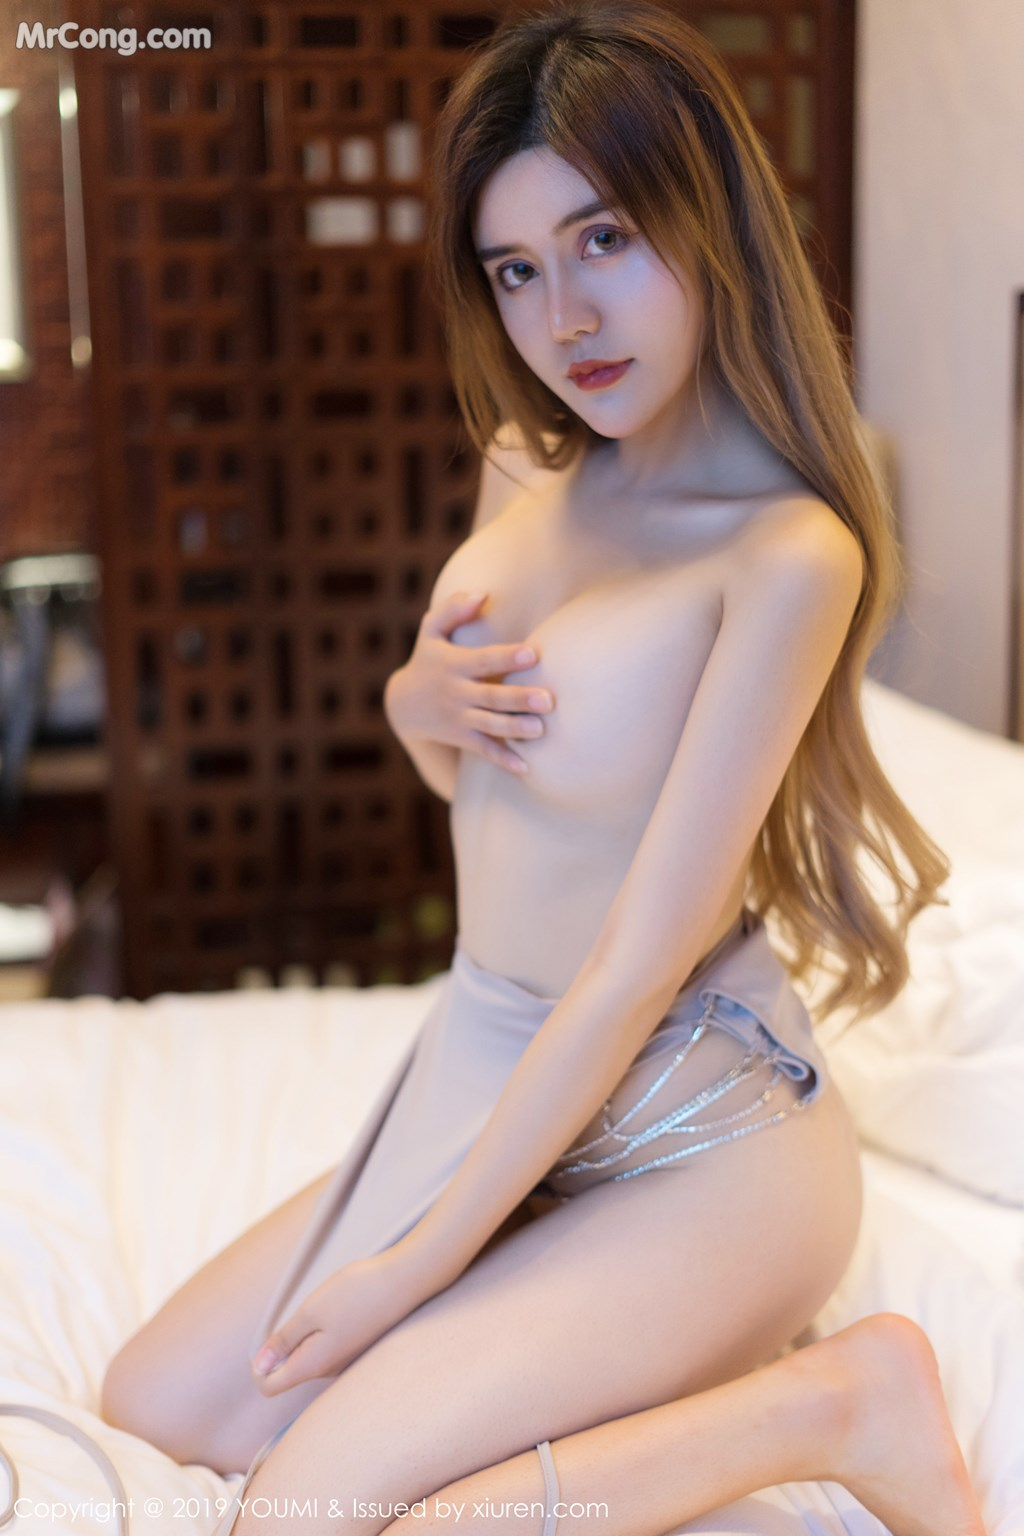 Image YouMi-Vol.283-Cris-MrCong.com-019 in post YouMi Vol.283: Cris_卓娅祺 (49 ảnh)